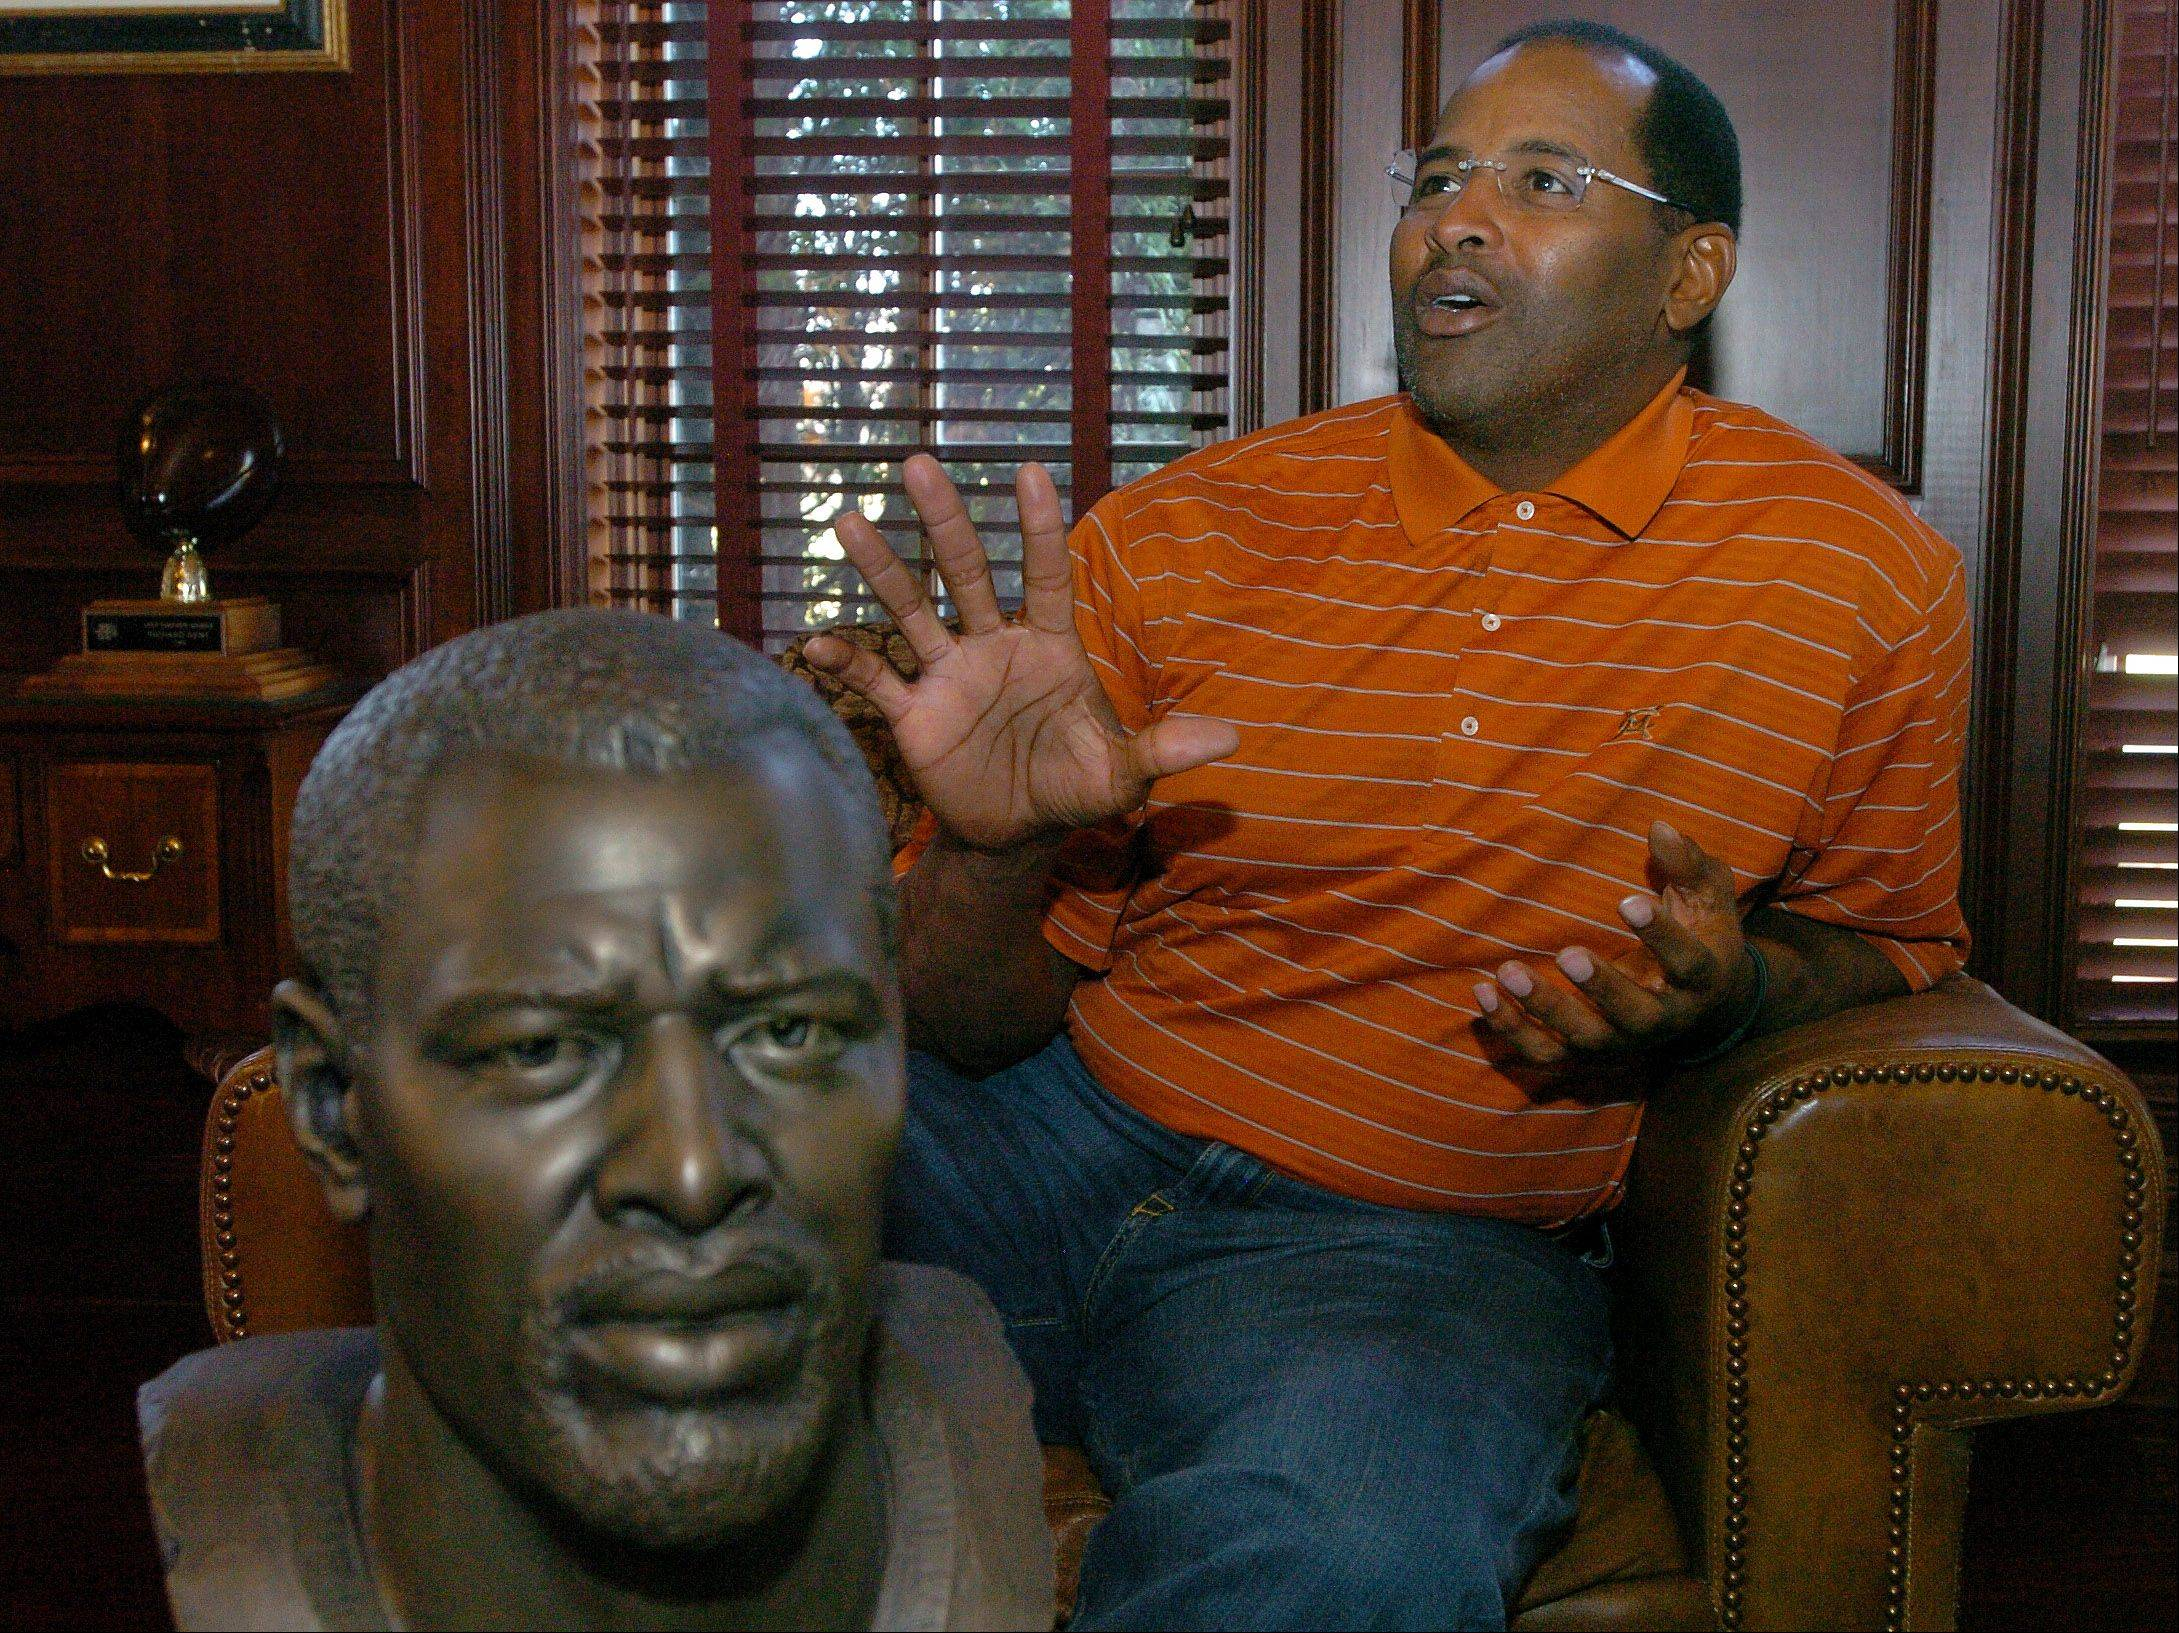 With his Hall of Fame bust in the foreground, Bears legend Richard Dent talks about his violent career from the comfort of his home in Long Grove.